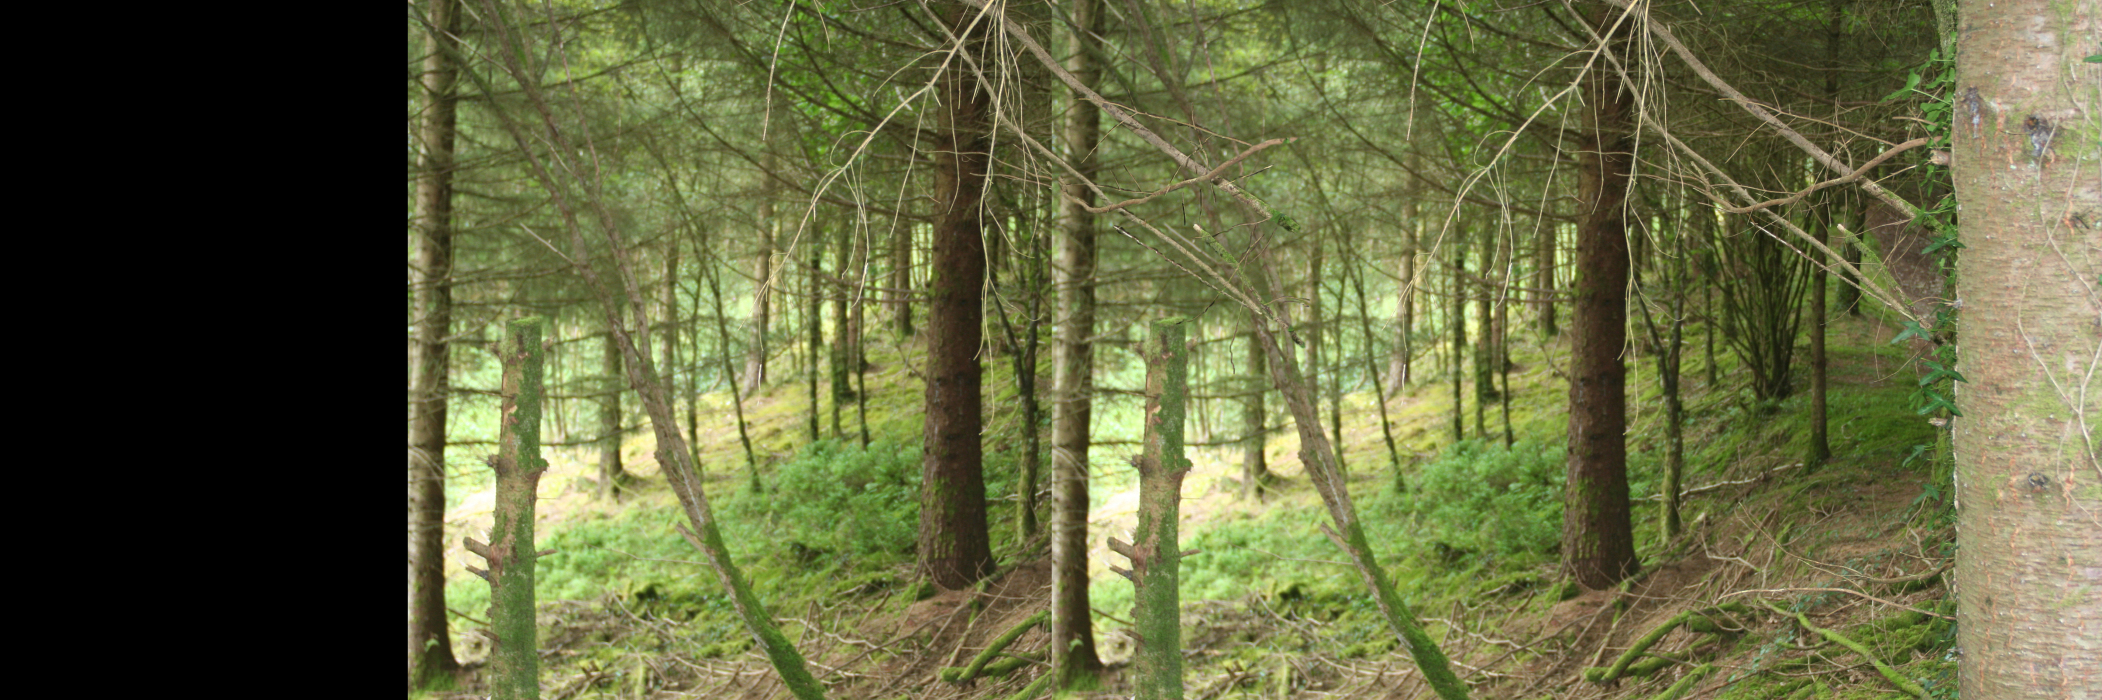 IMG_82lg63-PHOTOMONTAGE-FOREST-700H